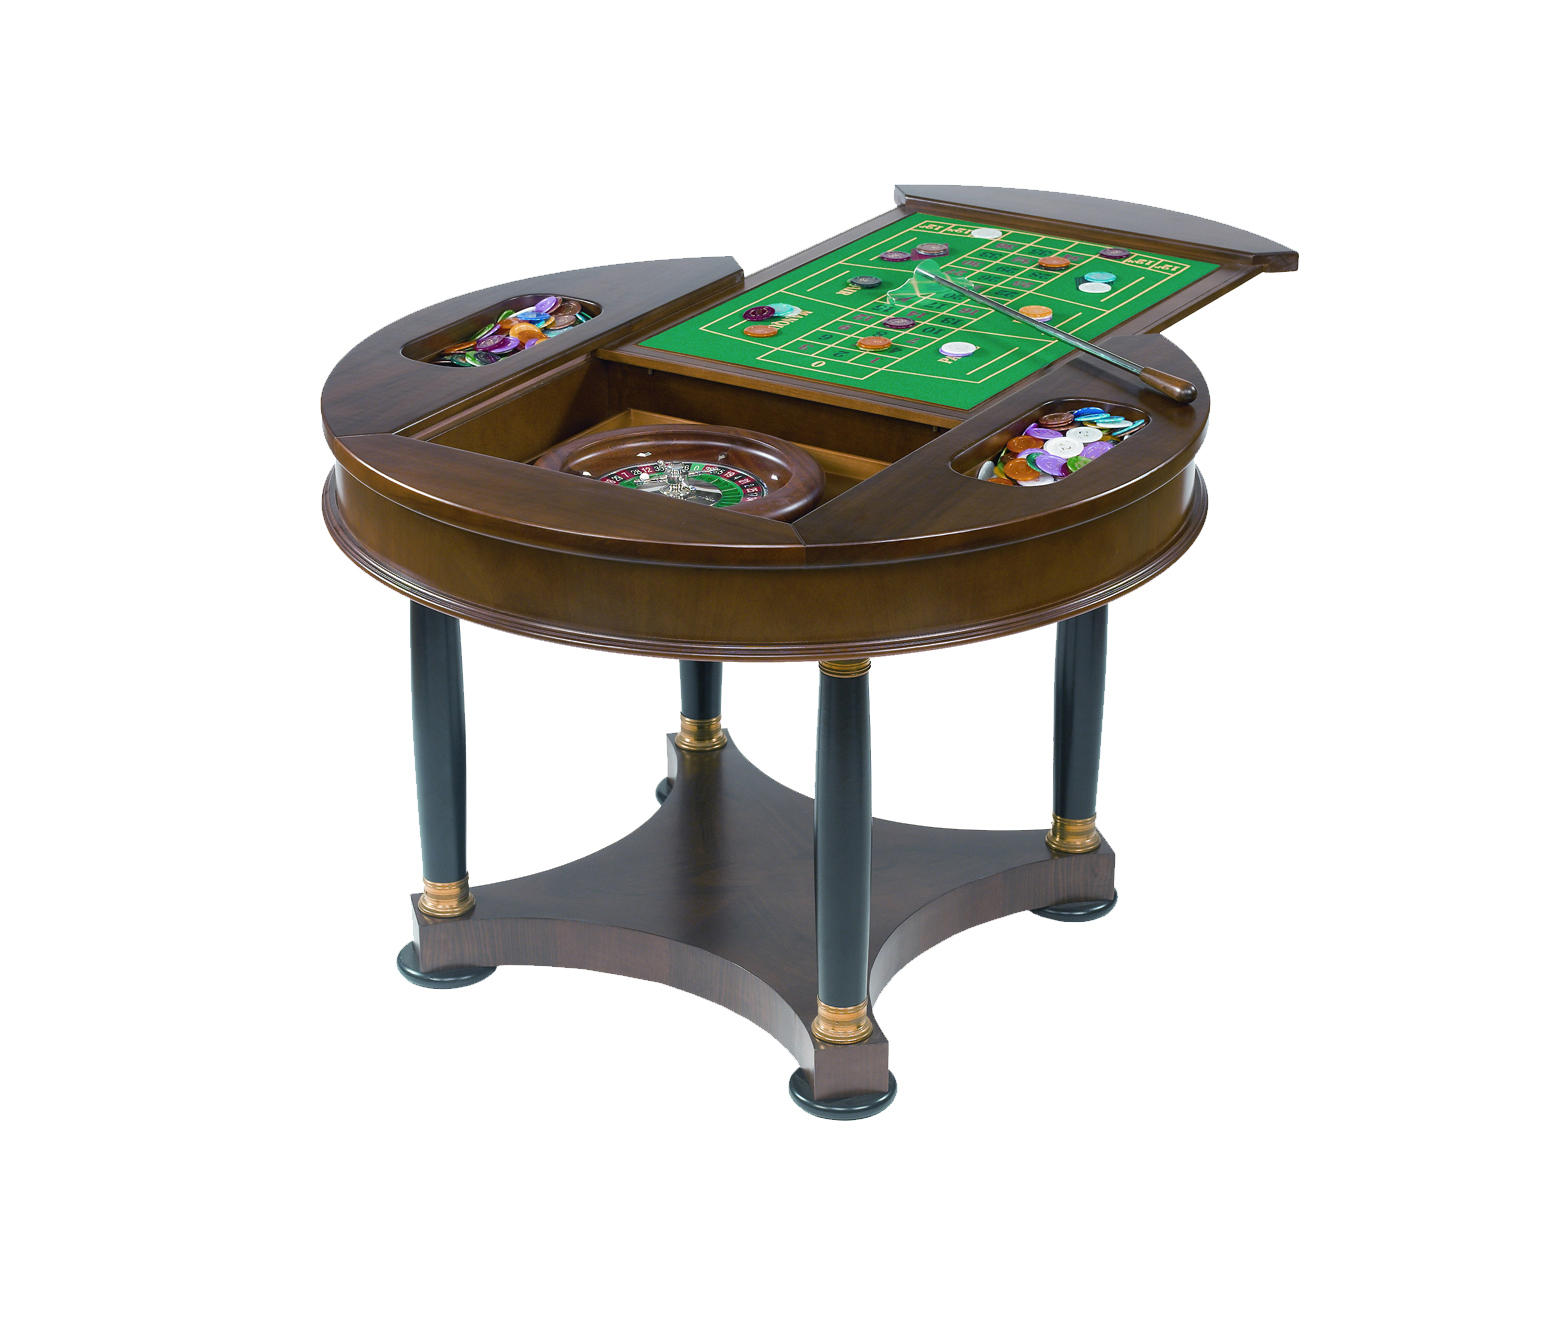 Empire tavoli da gioco biliardo chevillotte architonic for Jeu des tables